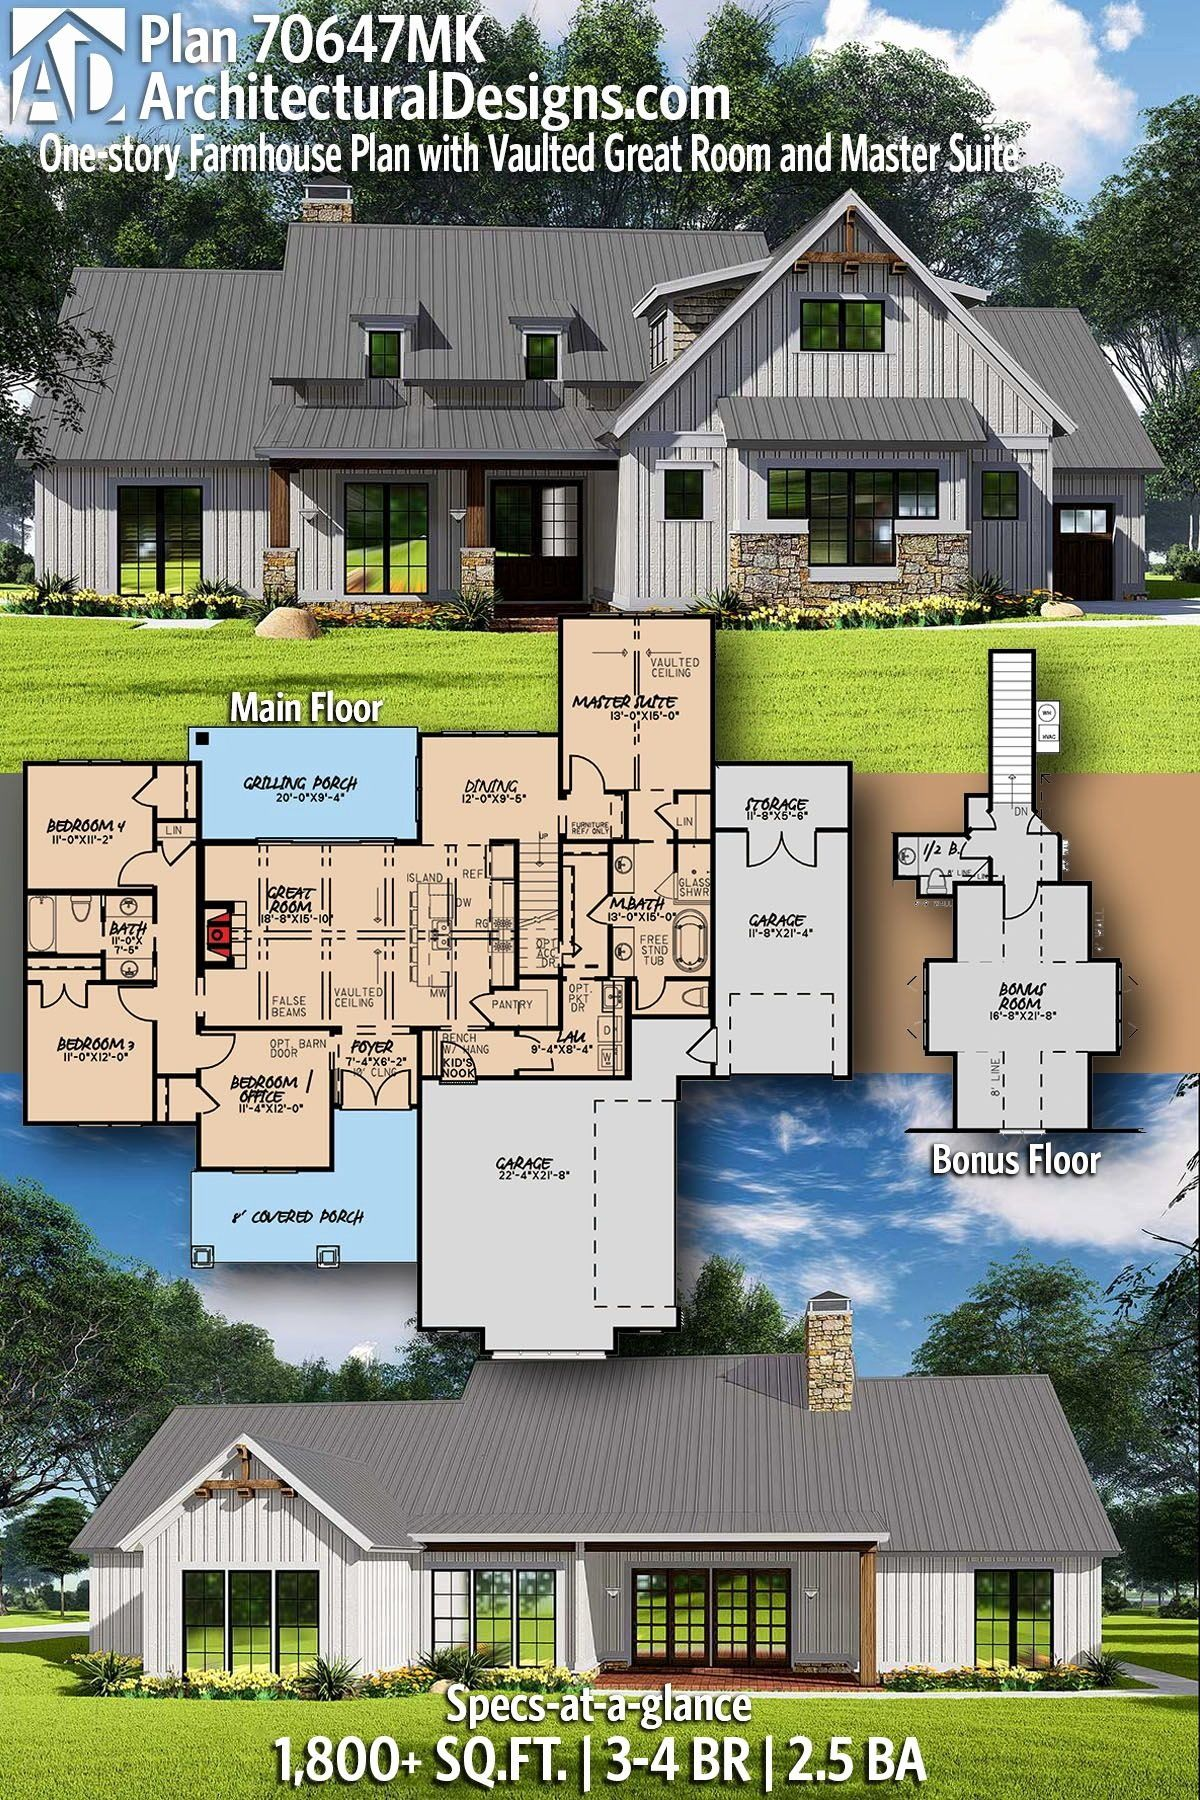 Adirondack Style House Plans Fresh Plan Mk E Story Farmhouse Plan With Vaulted Great House Plans Farmhouse Farmhouse Plans Country Style House Plans